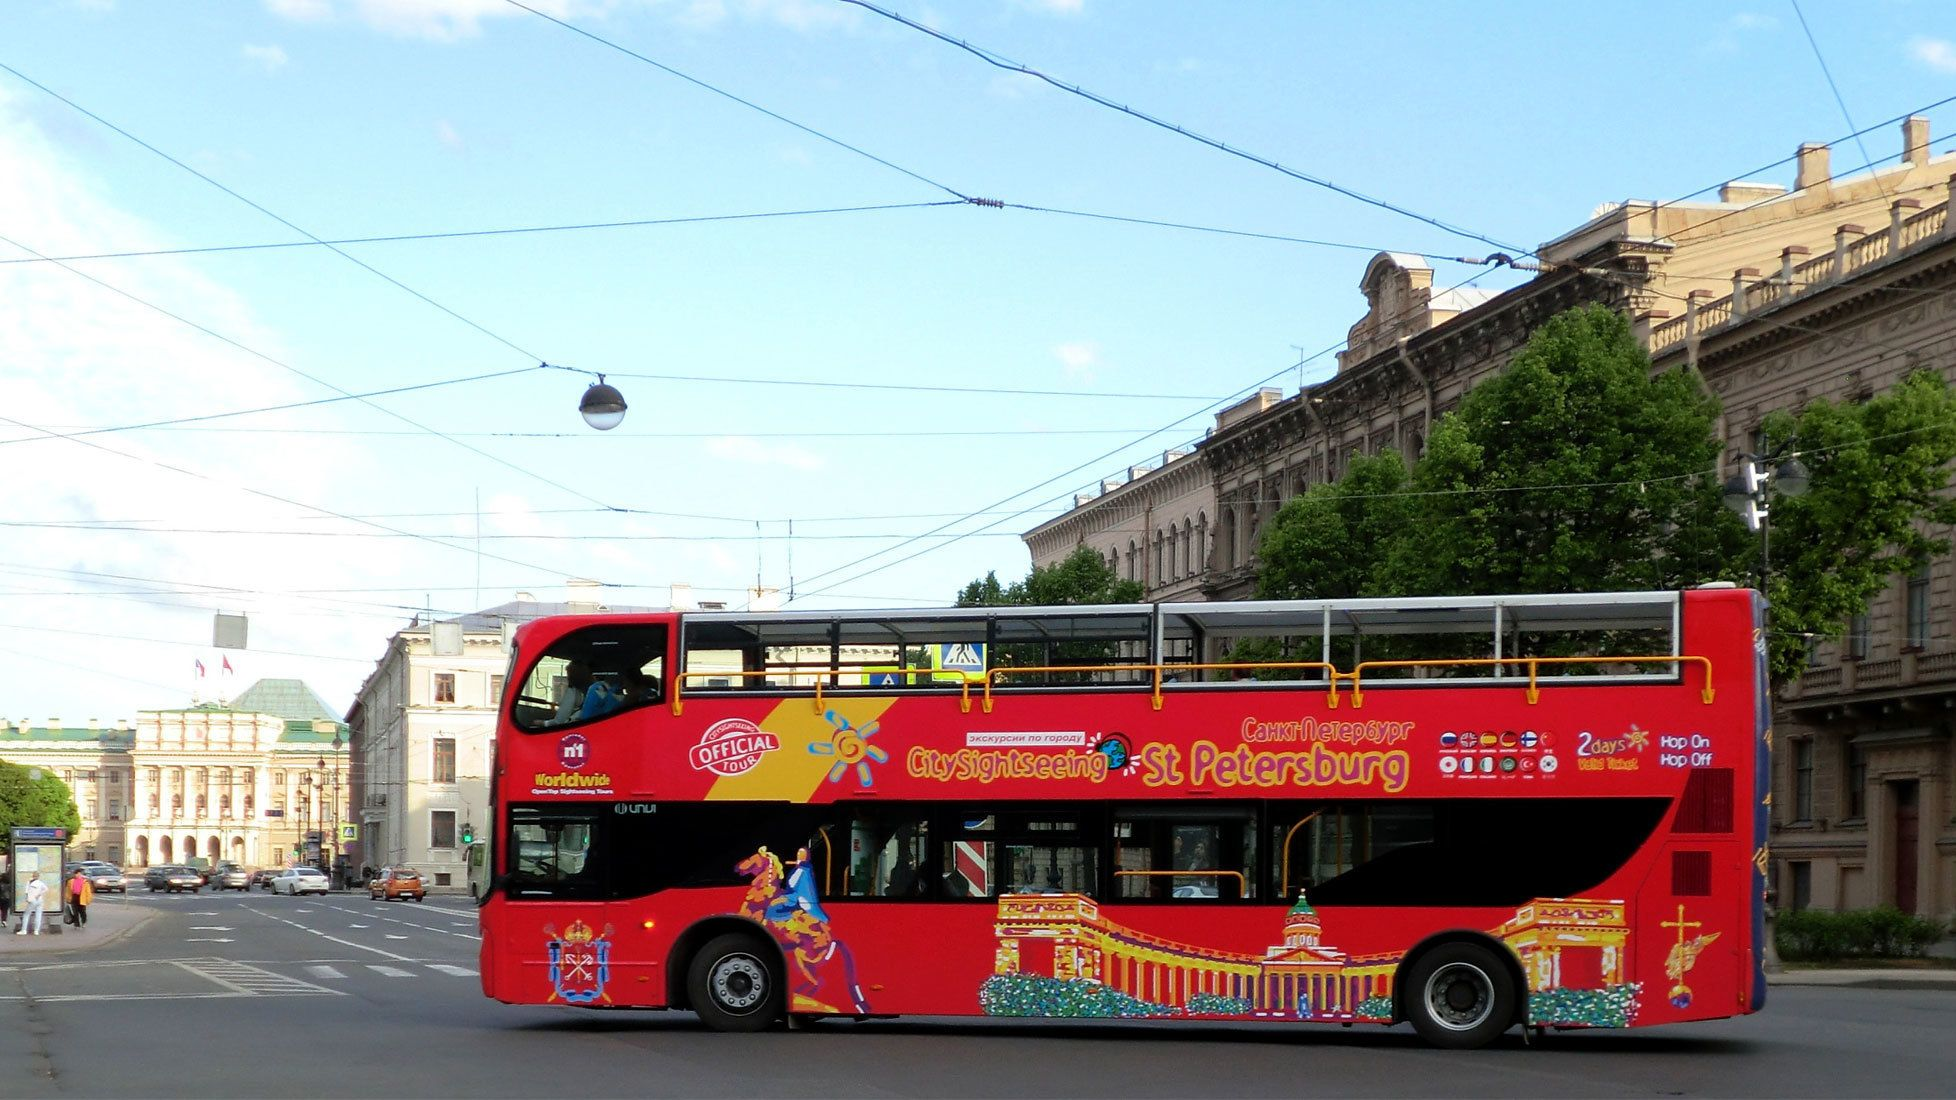 City Sightseeing St. Petersburg Hop-On Hop-Off Bus Tour